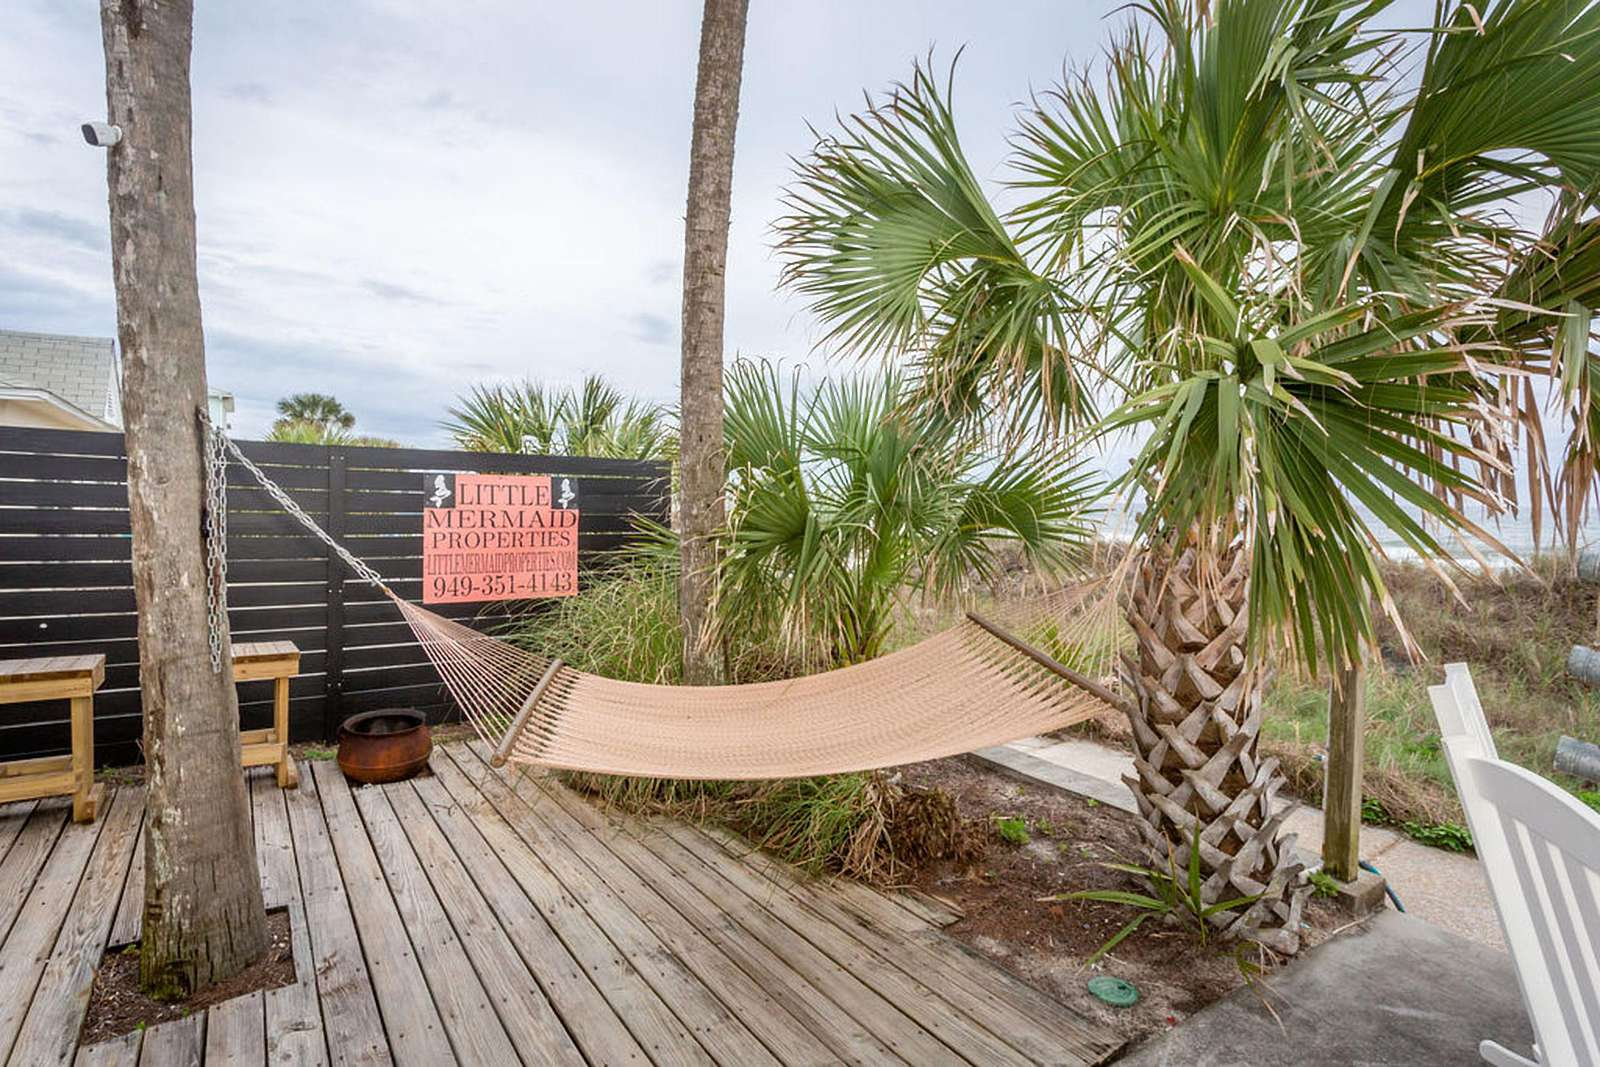 hammock for relaxing overlooking gulf